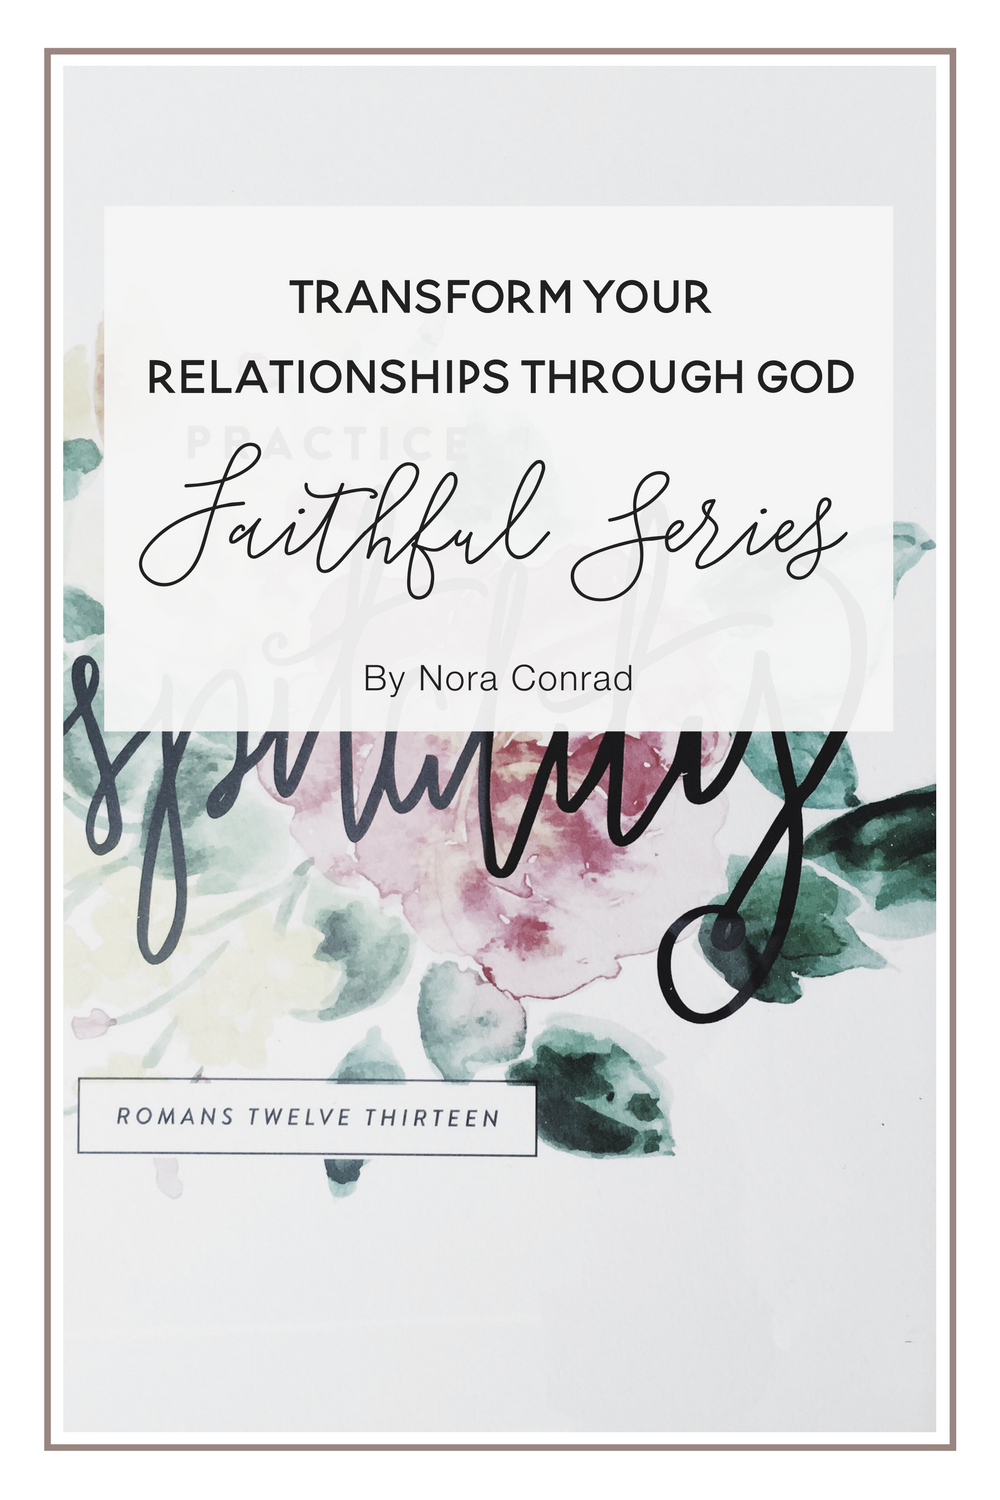 Transforming Your Relationships Through God - how to grow closer in your faith and develop a personal relationship with God.